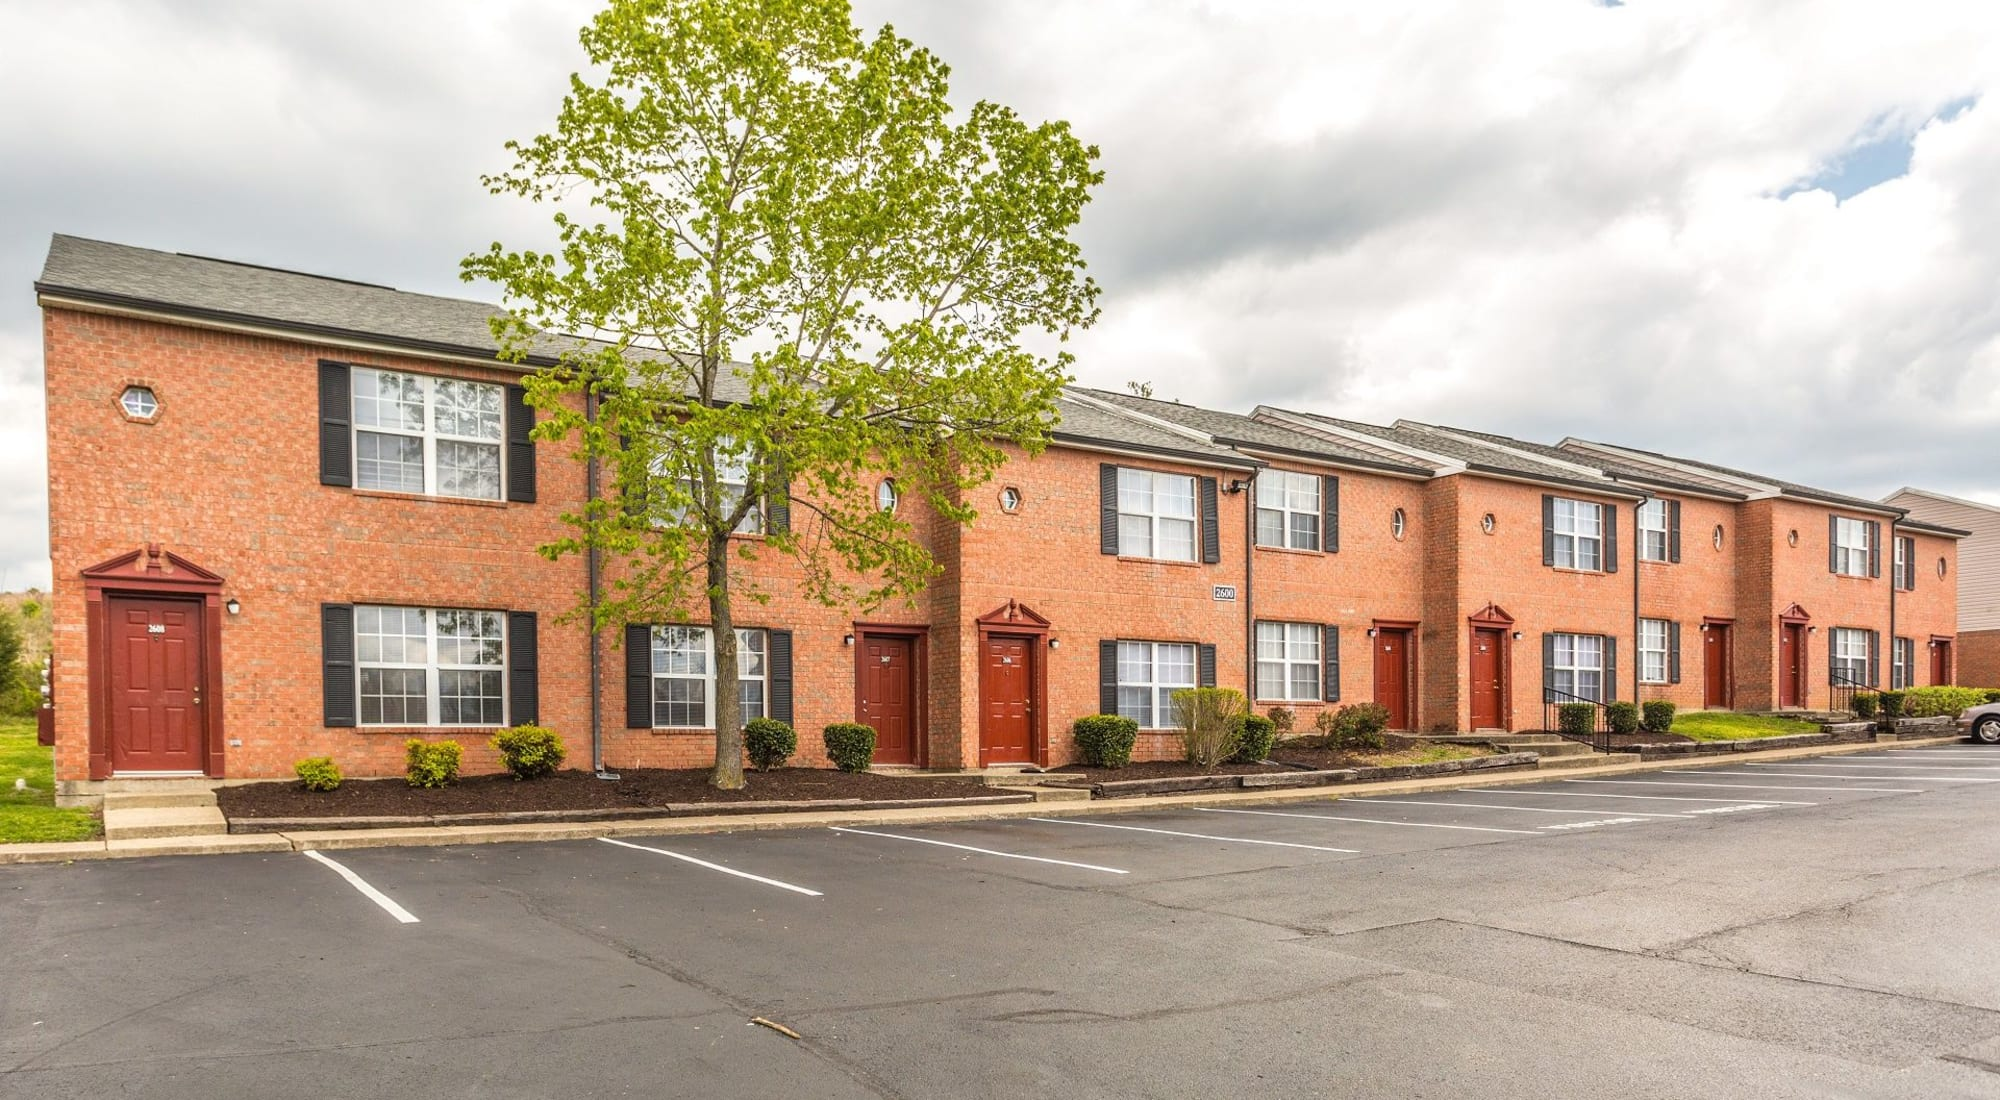 Cypress Creek Townhomes in Goodlettsville, Tennessee